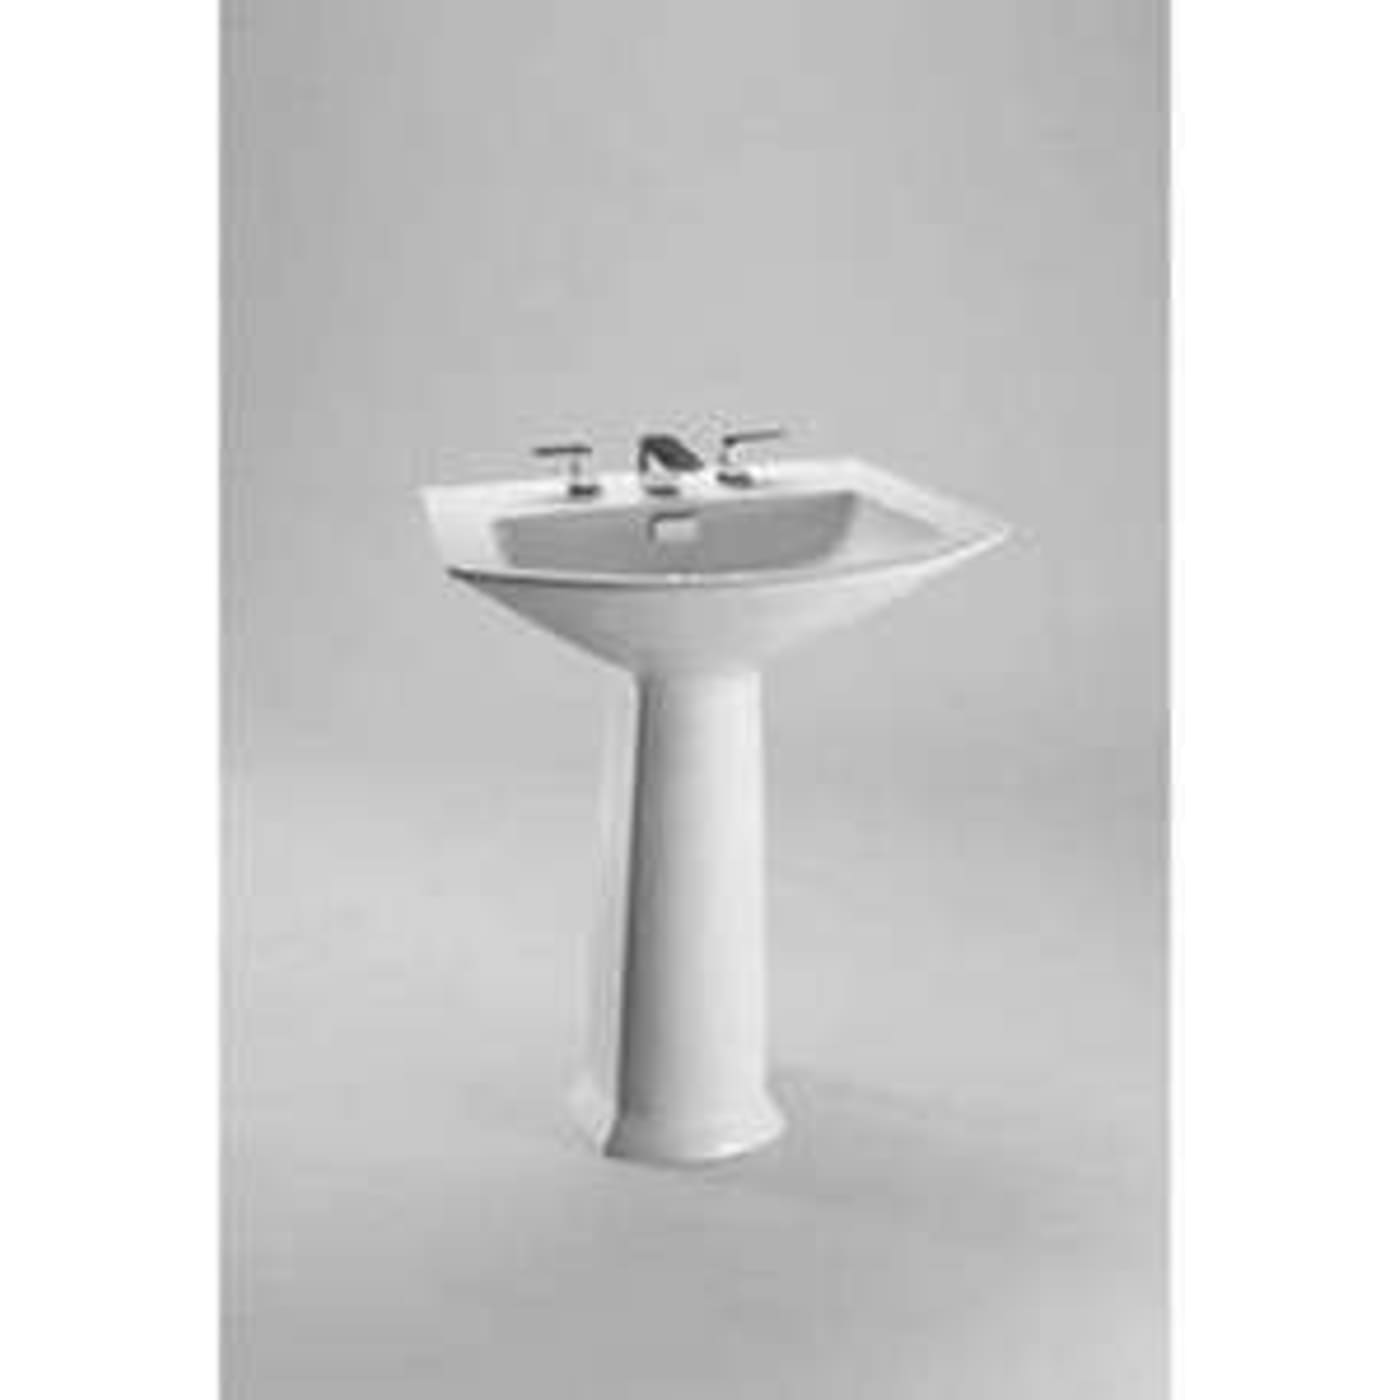 Toto Soiree Pedestal Vitreous China Bathroom Sink LT962.8#12 Sedona ...